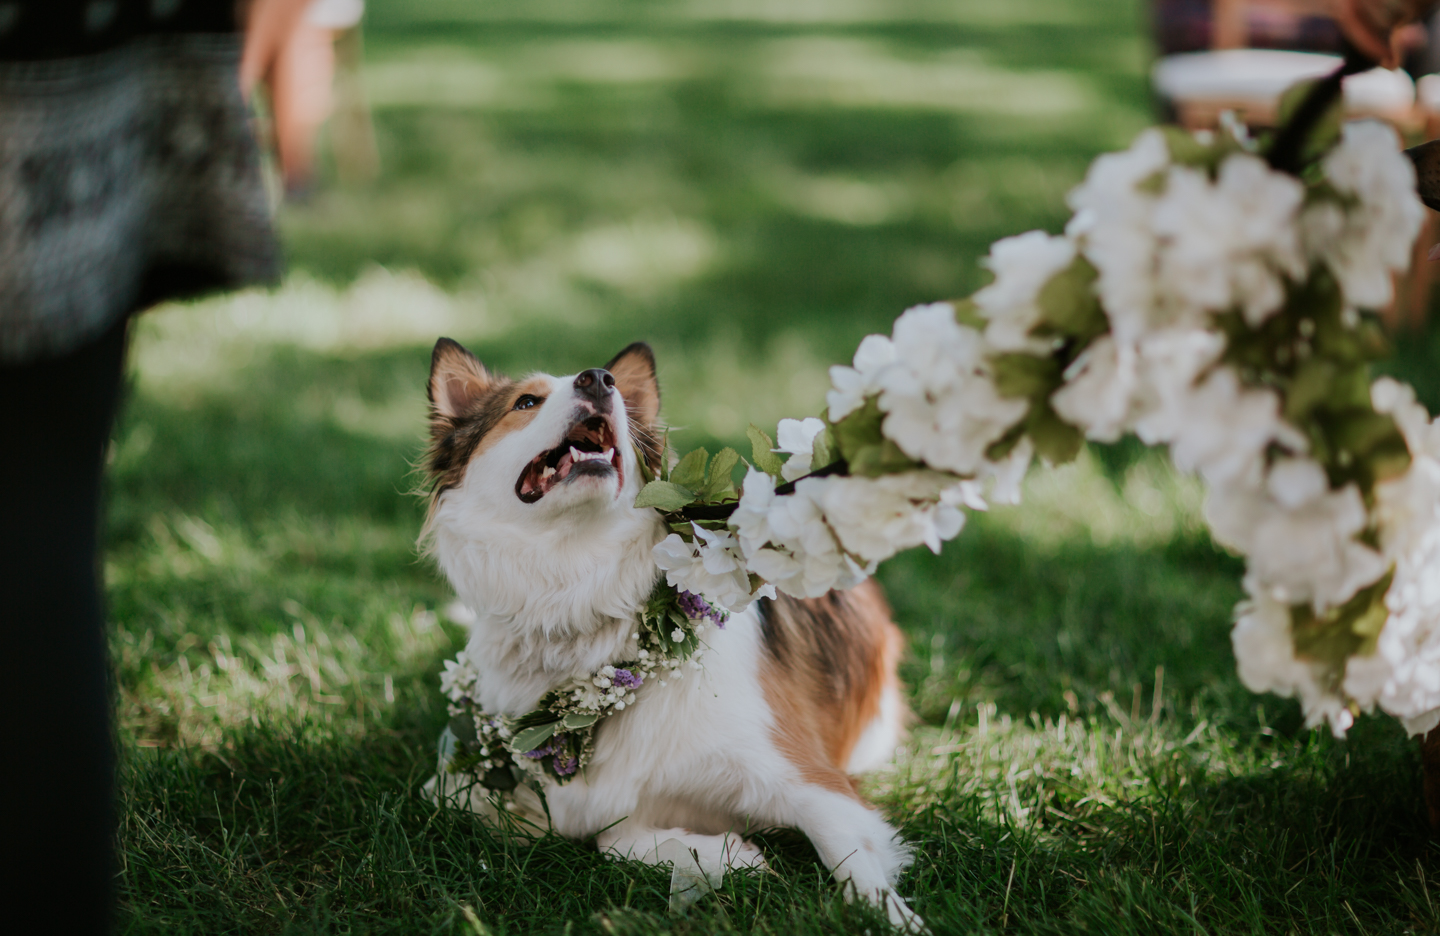 lola-grace-photography-dog-intimate-wedding-15.jpg